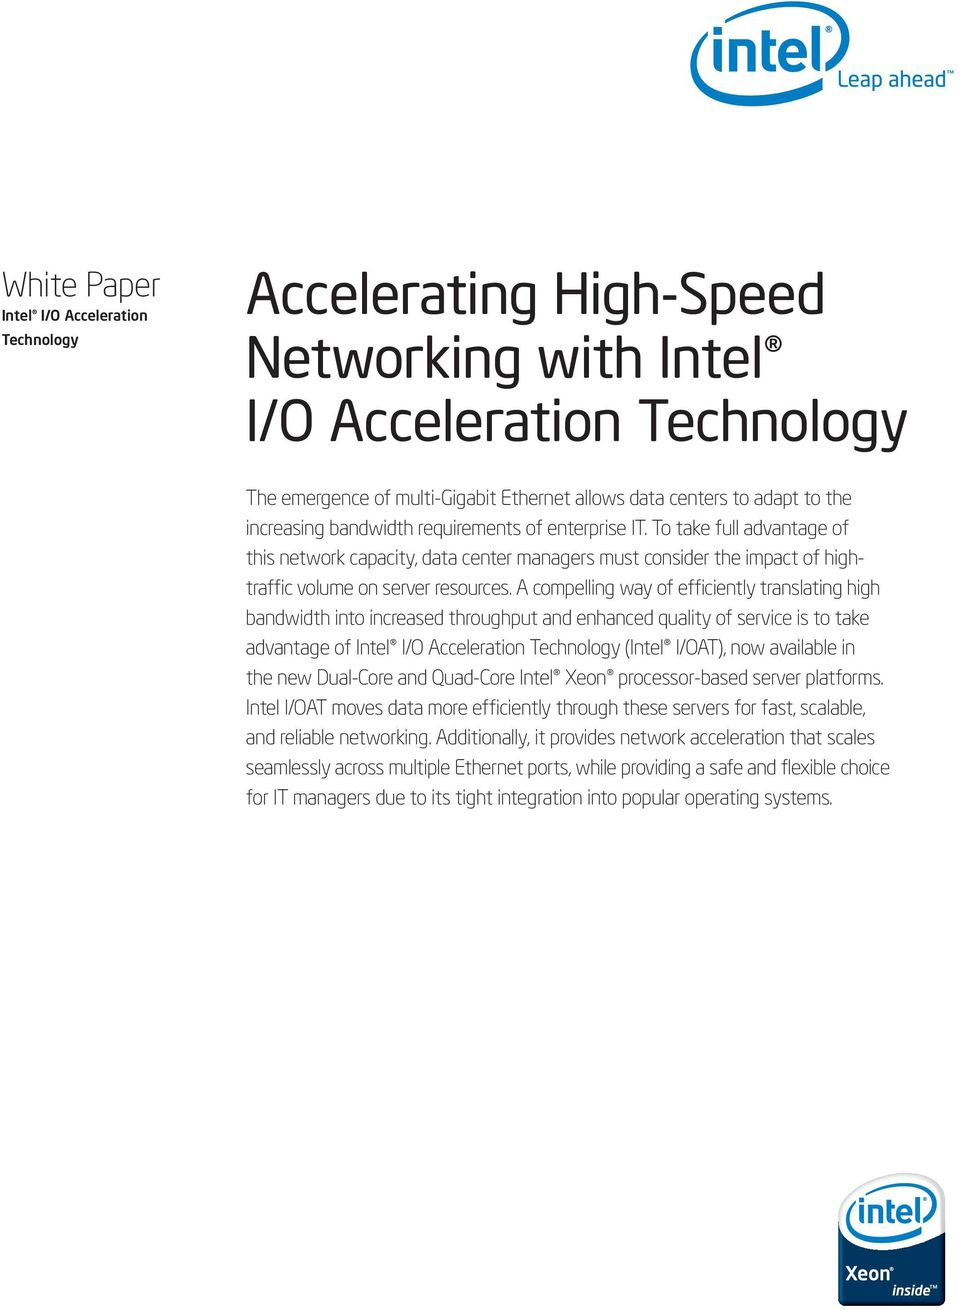 A compelling way of efficiently translating high bandwidth into increased throughput and enhanced quality of service is to take advantage of Intel I/O Acceleration Technology (Intel I/OAT), now